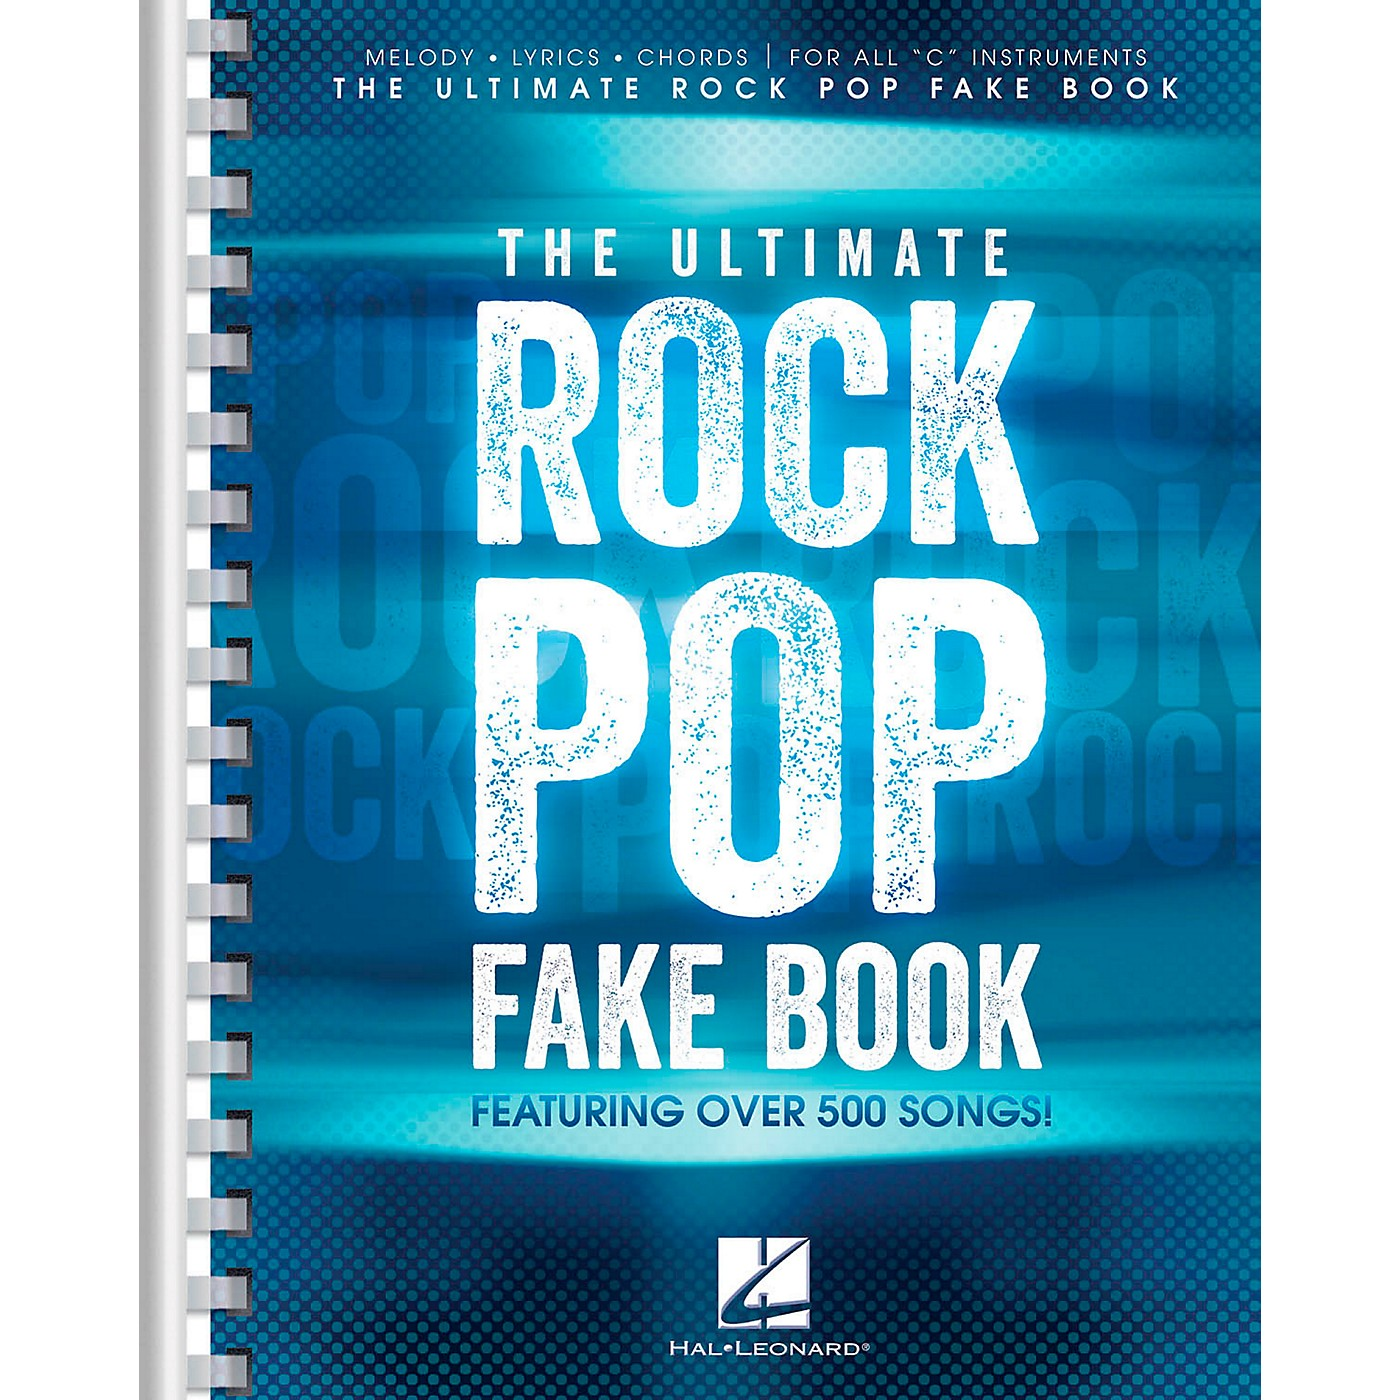 Hal Leonard The Ultimate Rock Pop Fake Book for C Instruments thumbnail